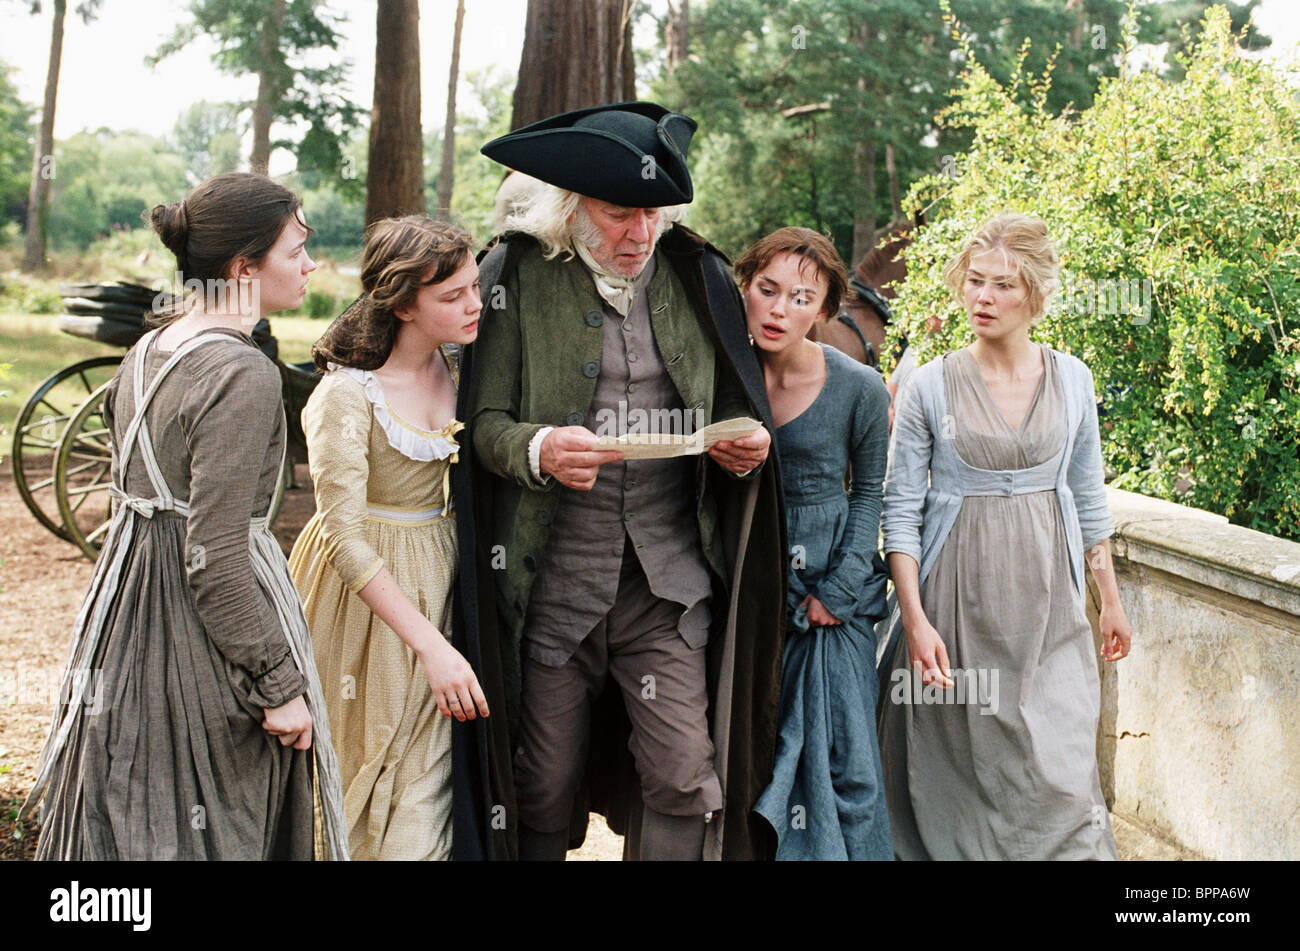 TALULAH RILEY CAREY MULLIGAN DONALD SUTHERLAND KEIRA KNIGHTLEY & ROSAMUND PIKE PRIDE AND PREJUDICE (2005) - Stock Image